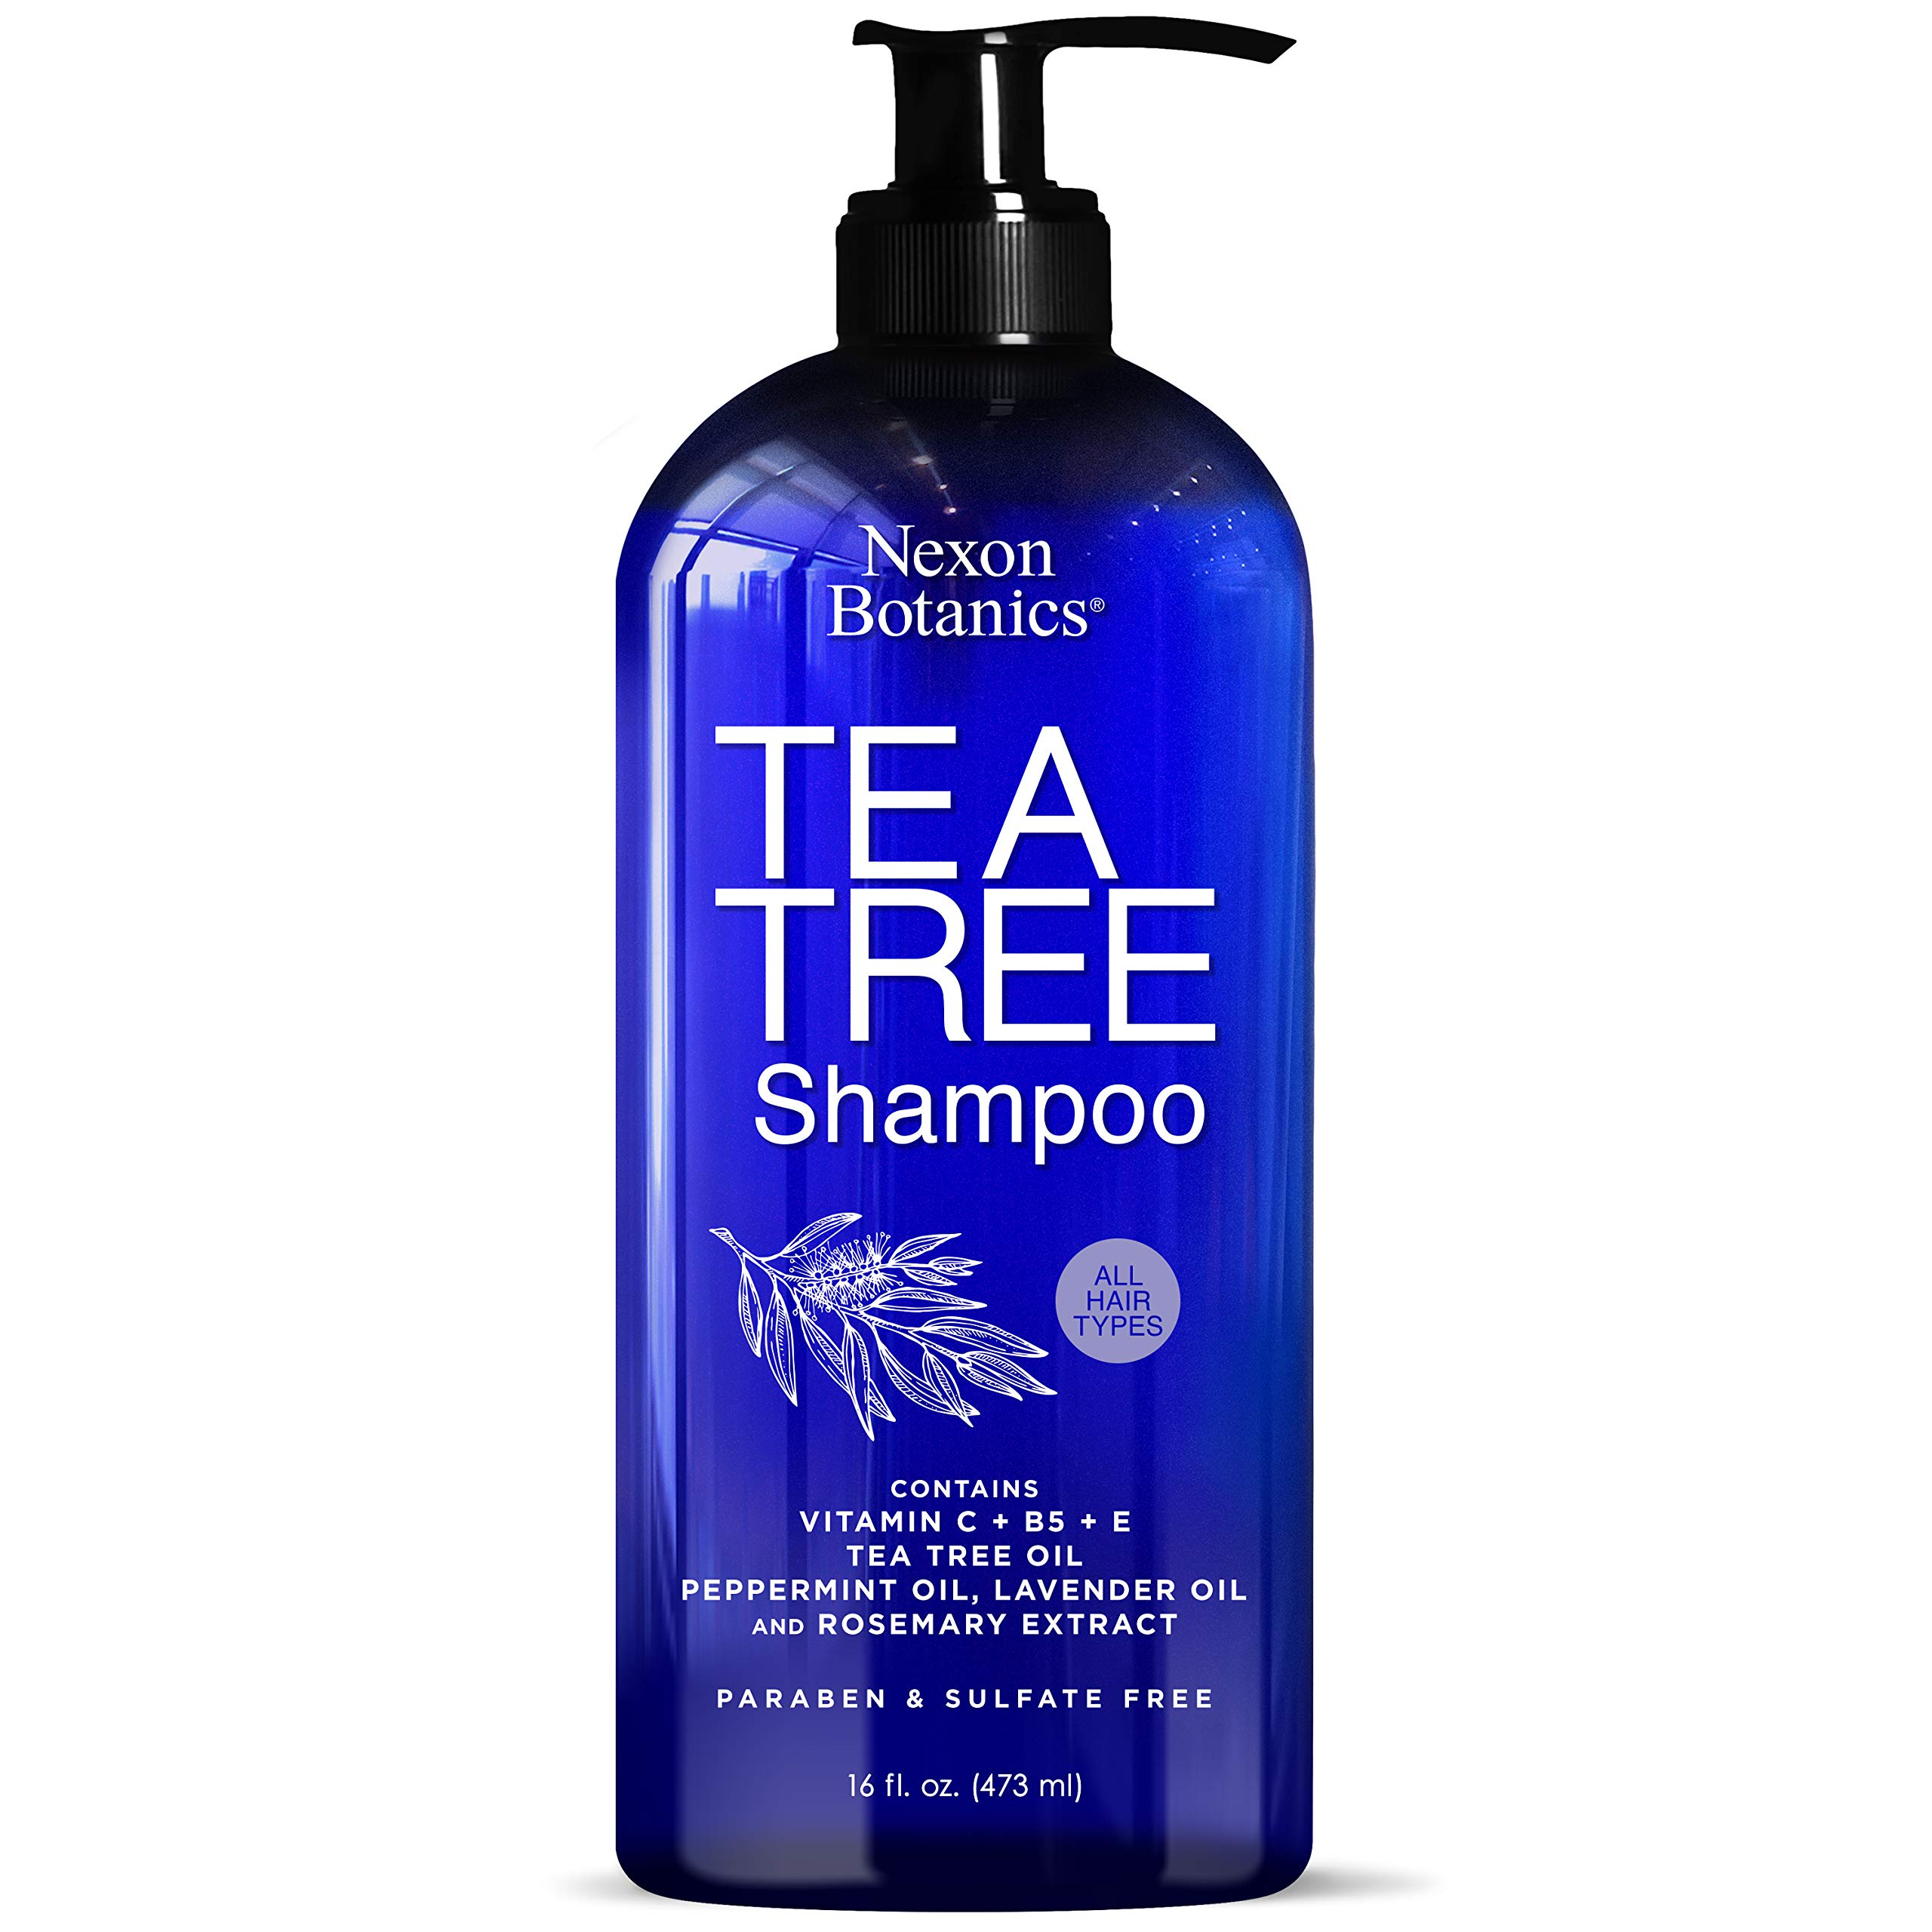 Nexon Botanics Tea Tree Shampoo 16 fl oz - Special Tea Tree Oil Shampoo for Dry, Itchy Scalp, Dandruff - Includes Natural and Pure Lavender, Peppermint, Tea Tree Oils - Sulfate Free and Paraben Free by Nexon Botanics